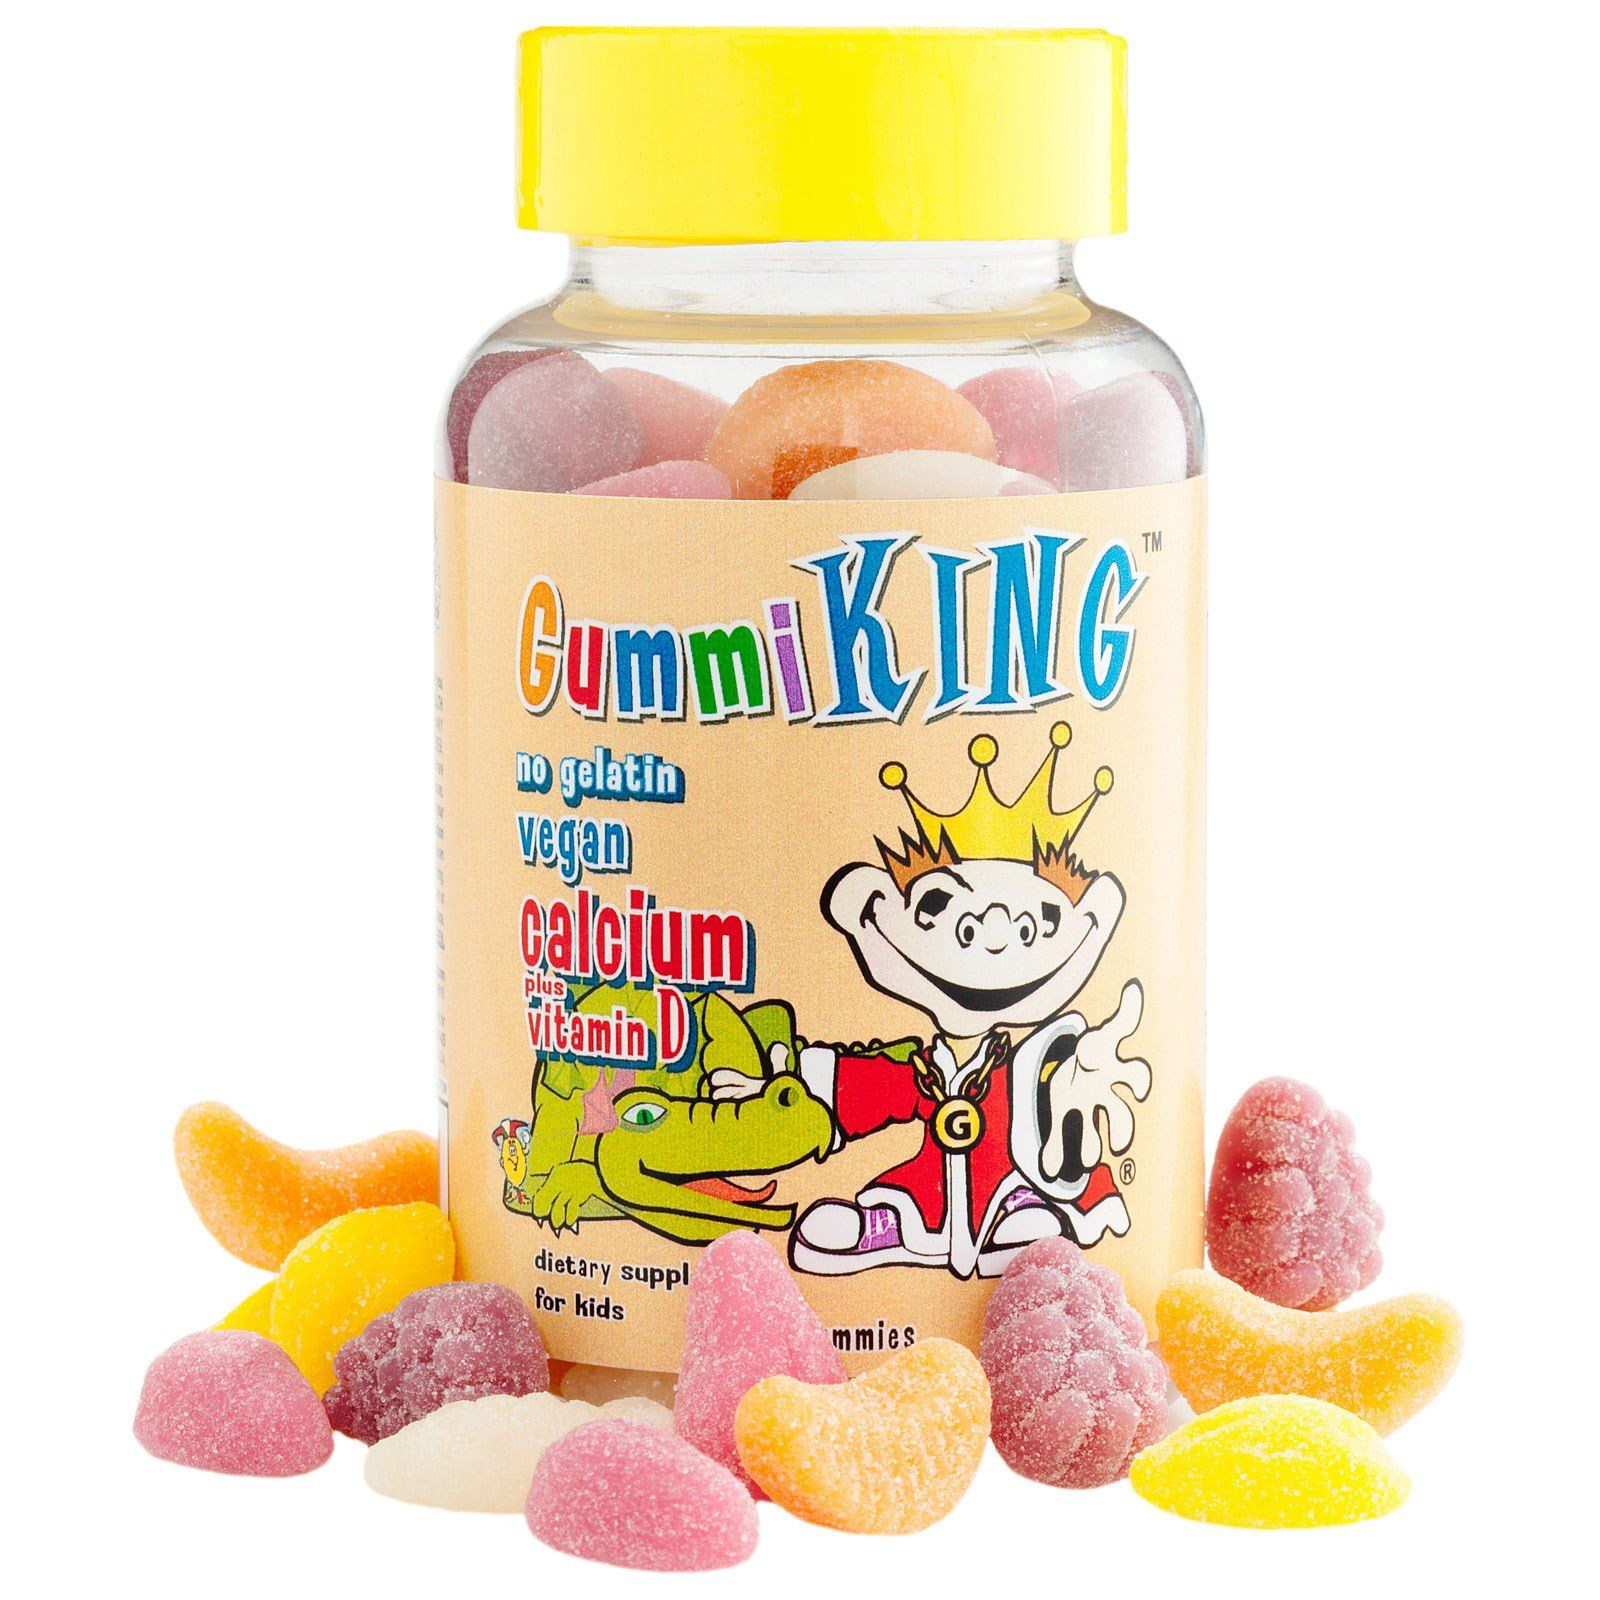 Gummi King Calcium Plus Vitamin D For Kids 60 Gummies